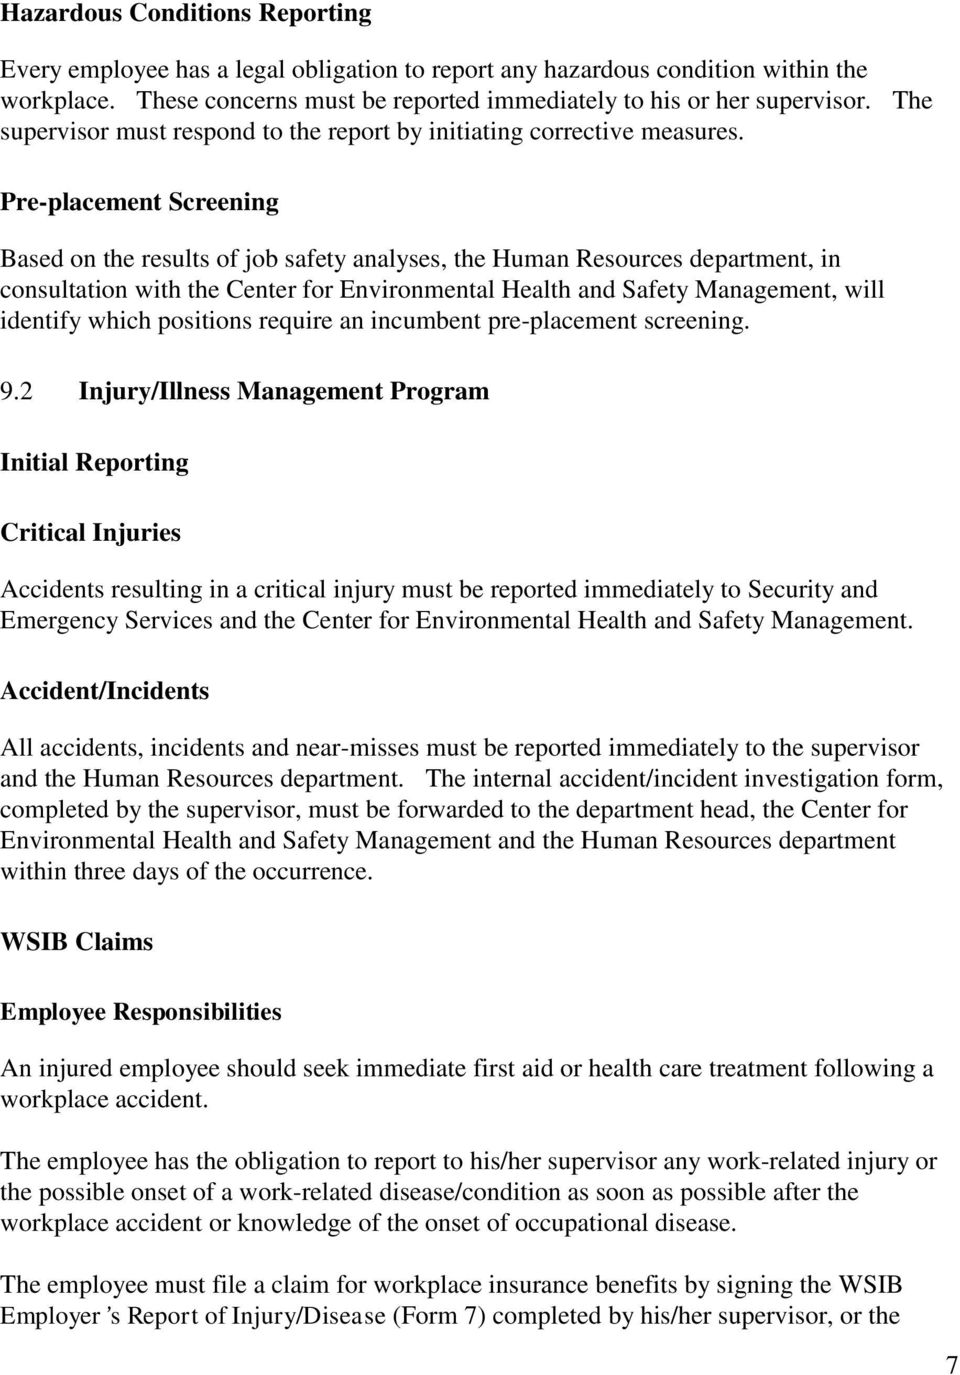 Pre-placement Screening Based on the results of job safety analyses, the Human Resources department, in consultation with the Center for Environmental Health and Safety Management, will identify